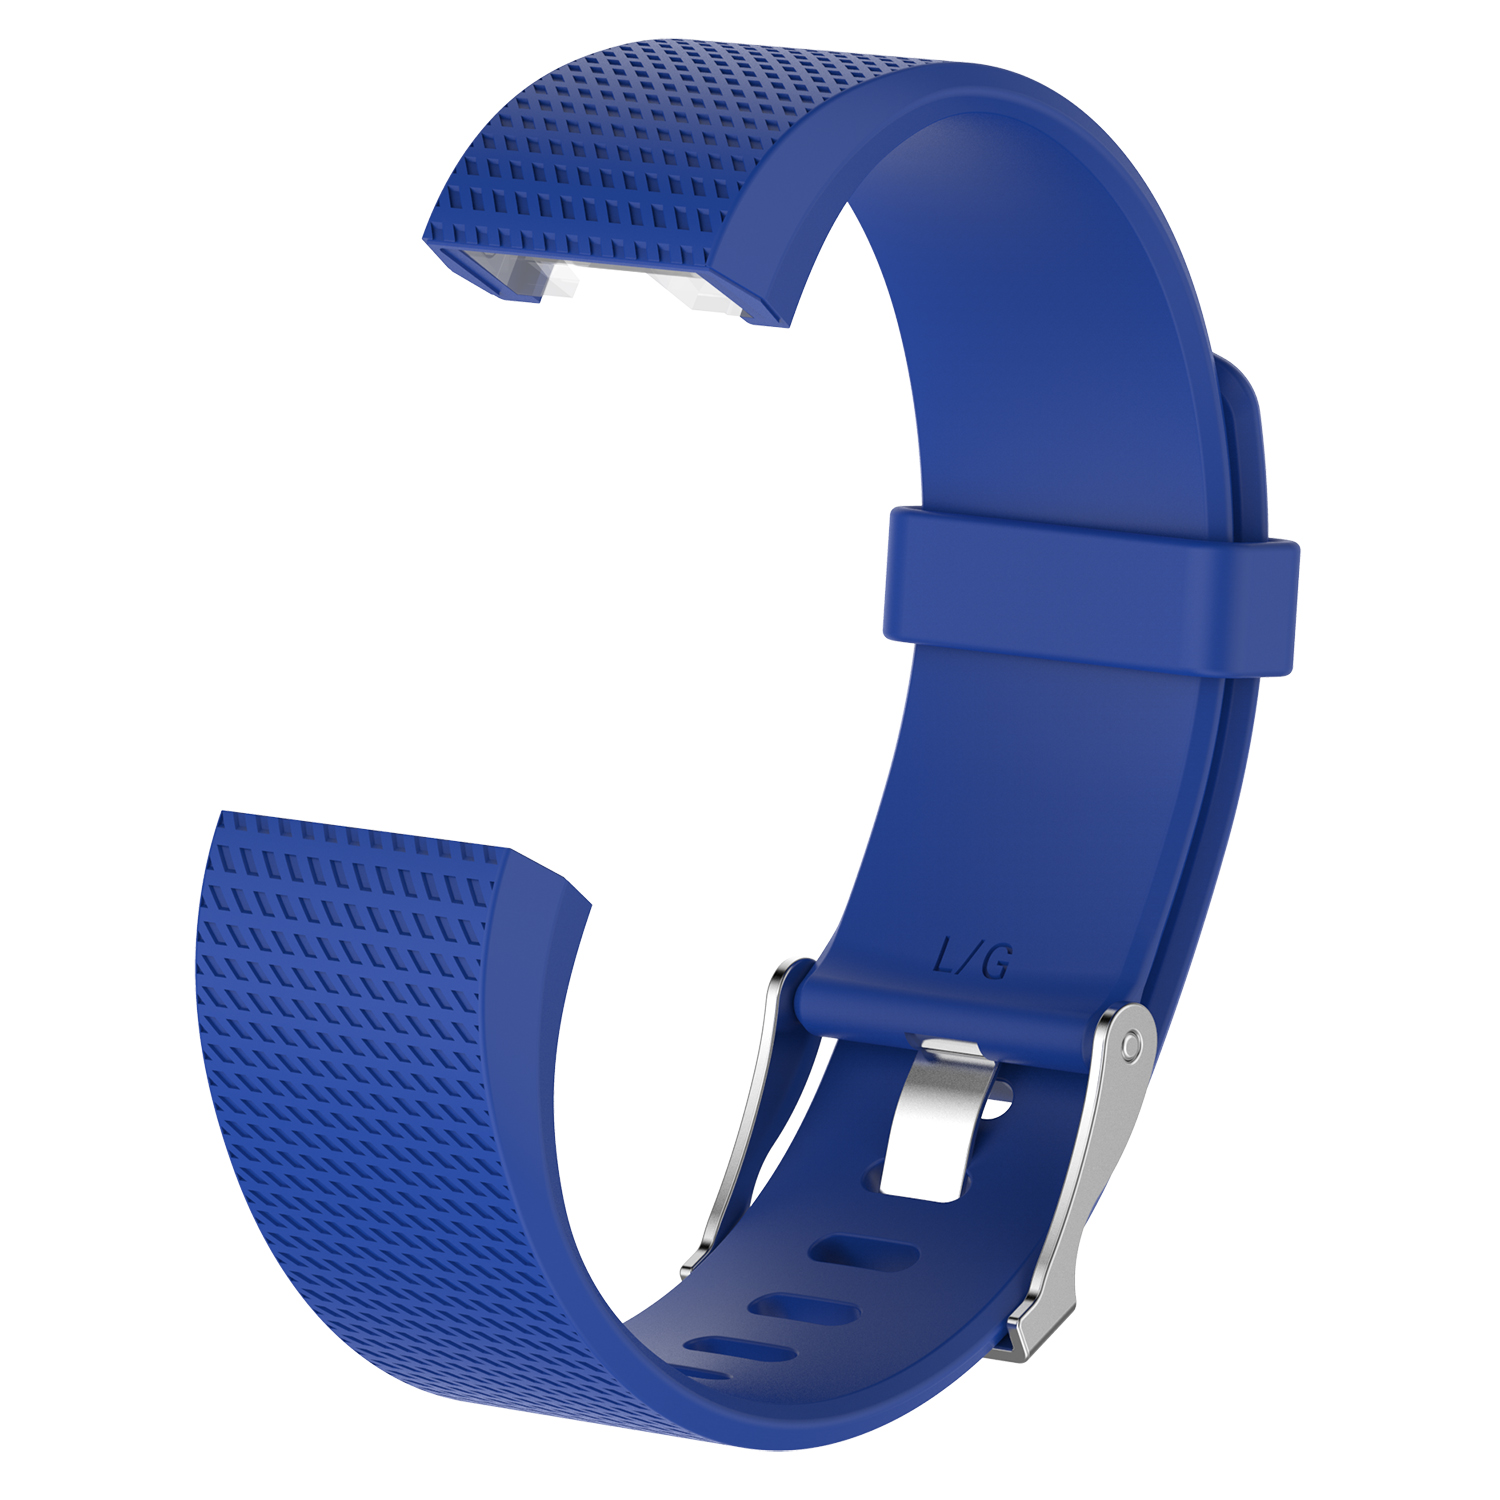 Replacement-Silicone-Wristband-Watch-Strap-Bands-Bracelet-For-Fitbit-Charge-2 thumbnail 65